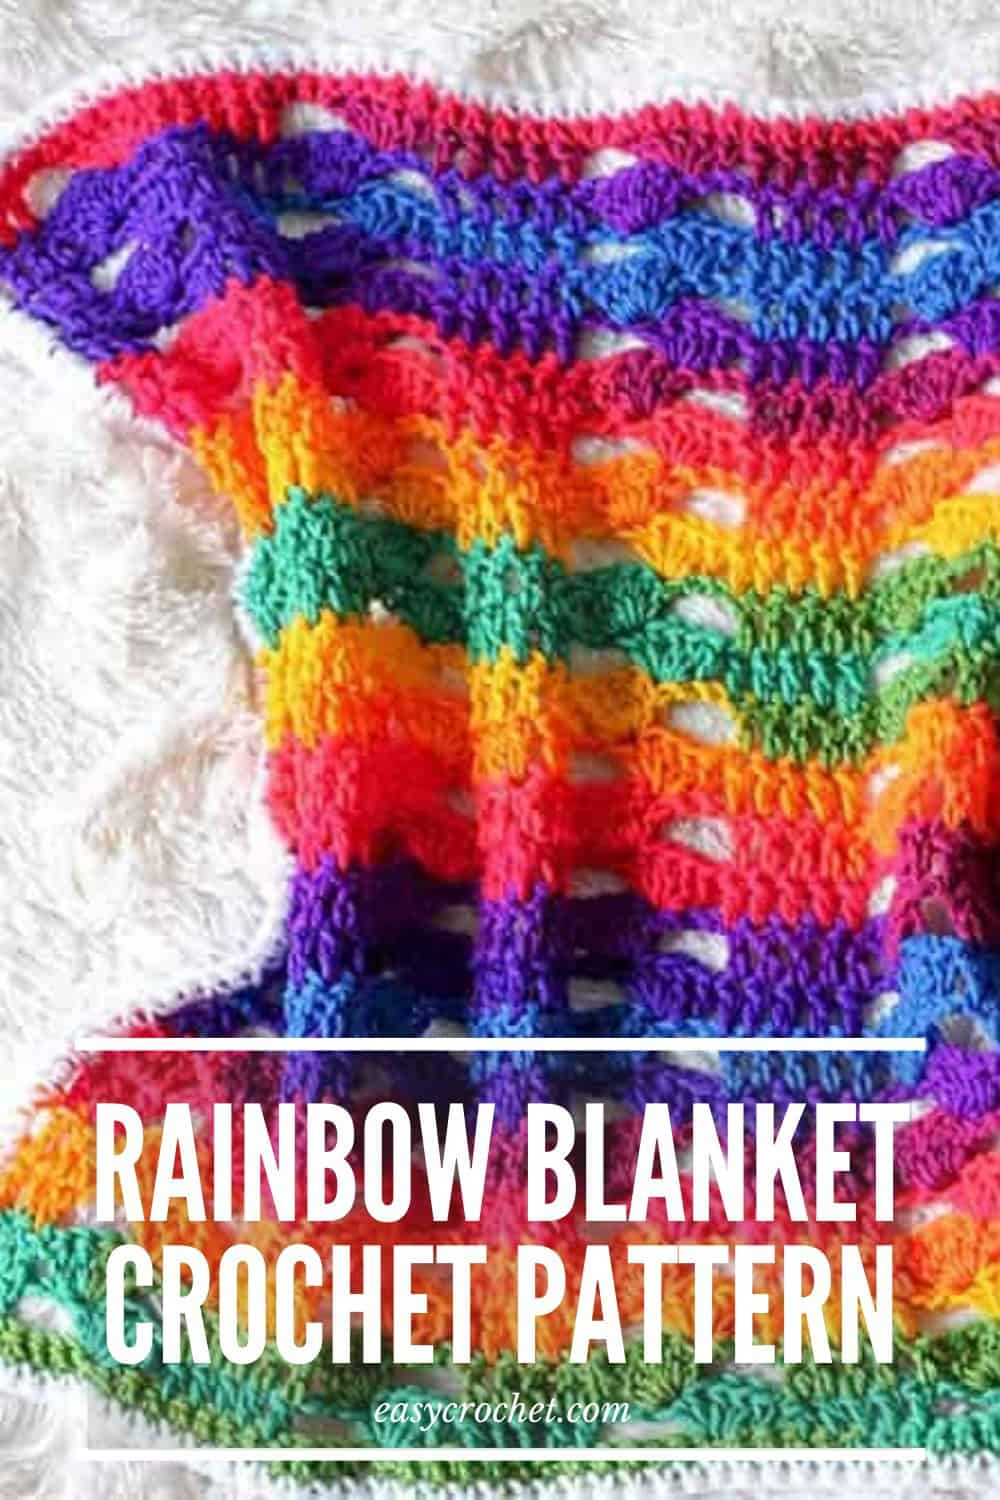 Rainbow Crochet Blanket Pattern via @easycrochetcom